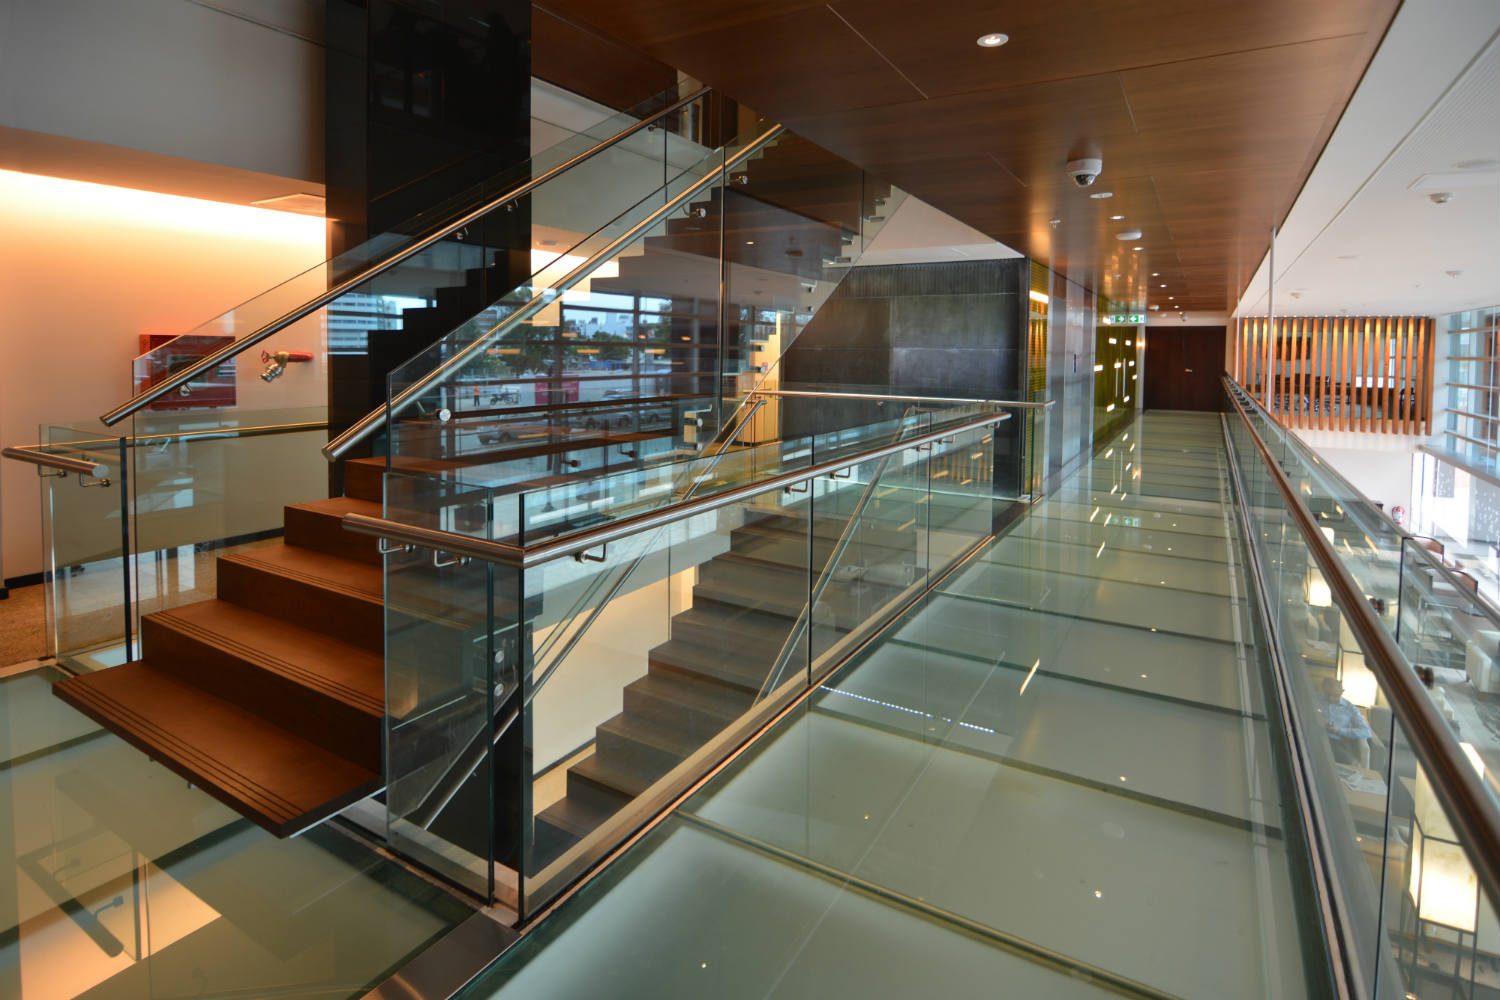 Hilton Garden Inn in Montevideo, Uruguay. Invisible acoustics designed and install by WSDG - WSDG Latin, Sergio Molho and Silvia Molho. Stairs